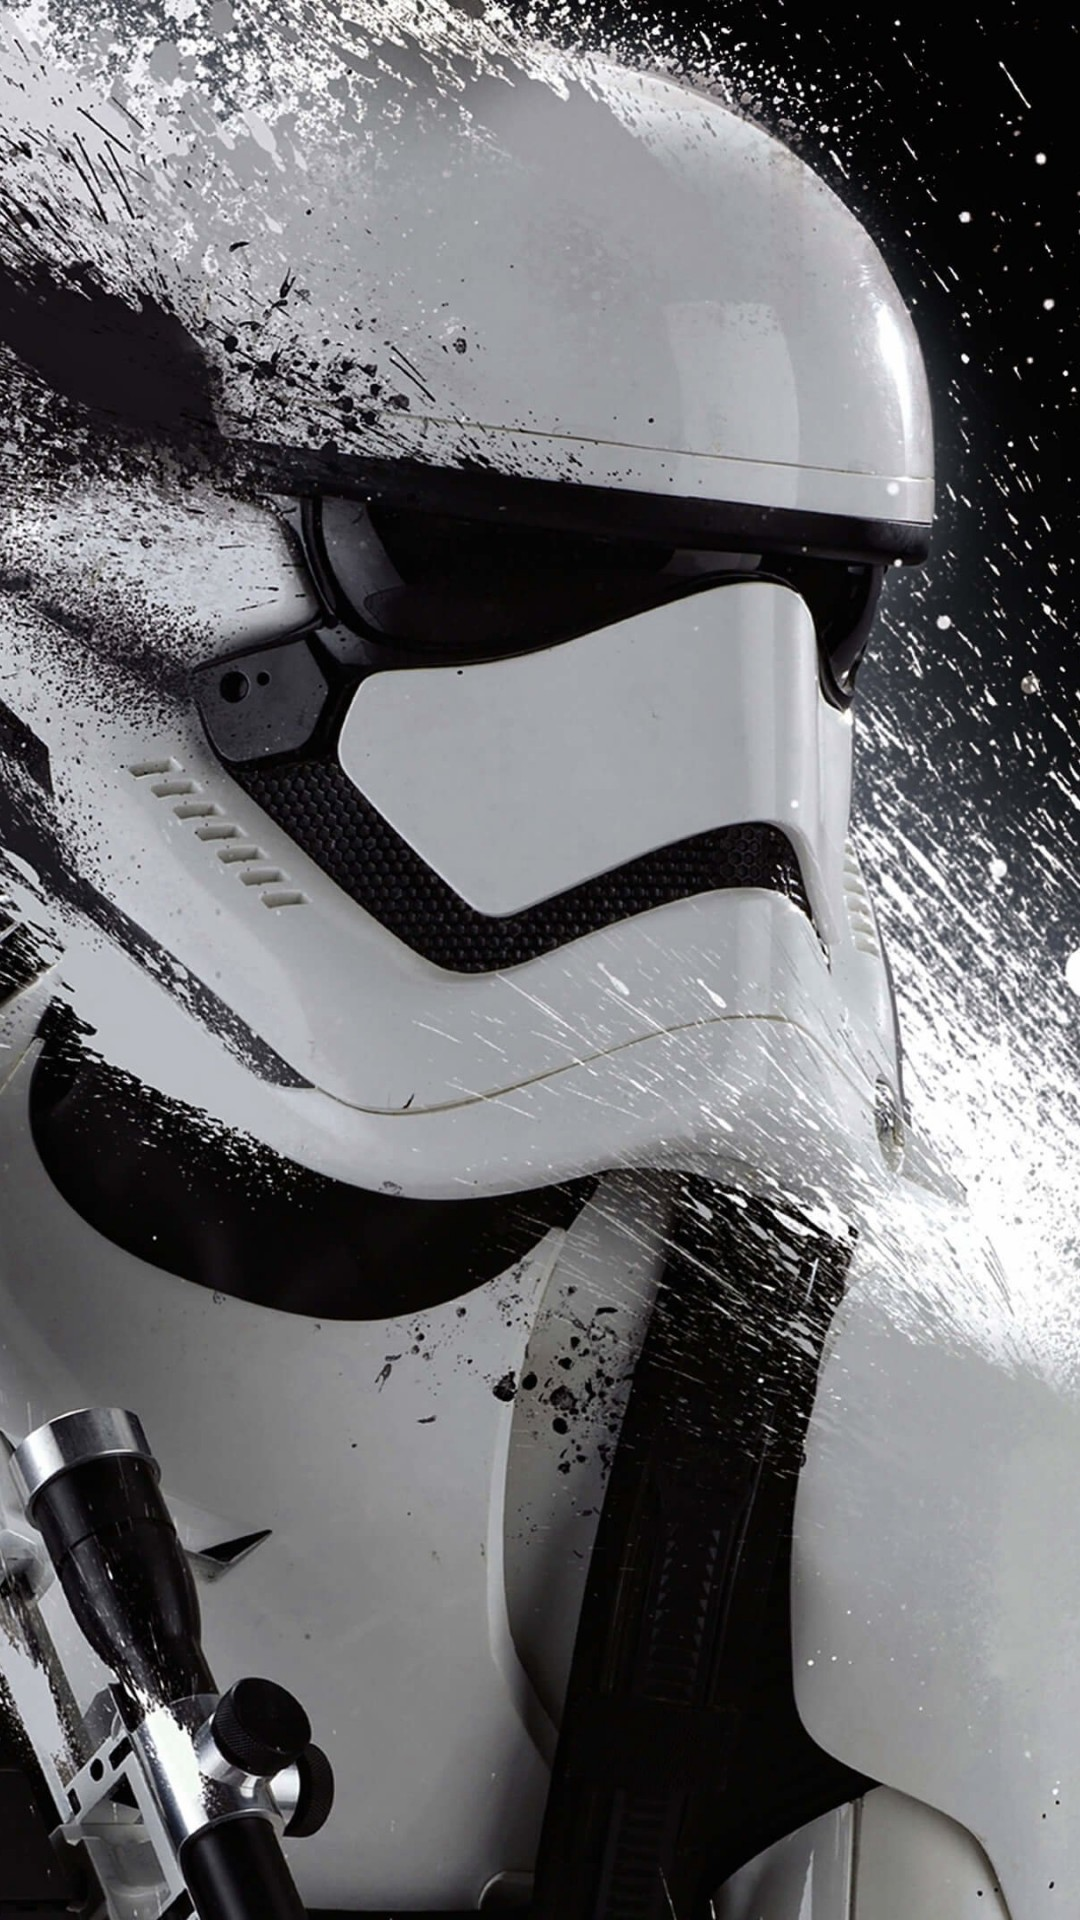 Stormtrooper Splatter Wallpaper for SONY Xperia Z3